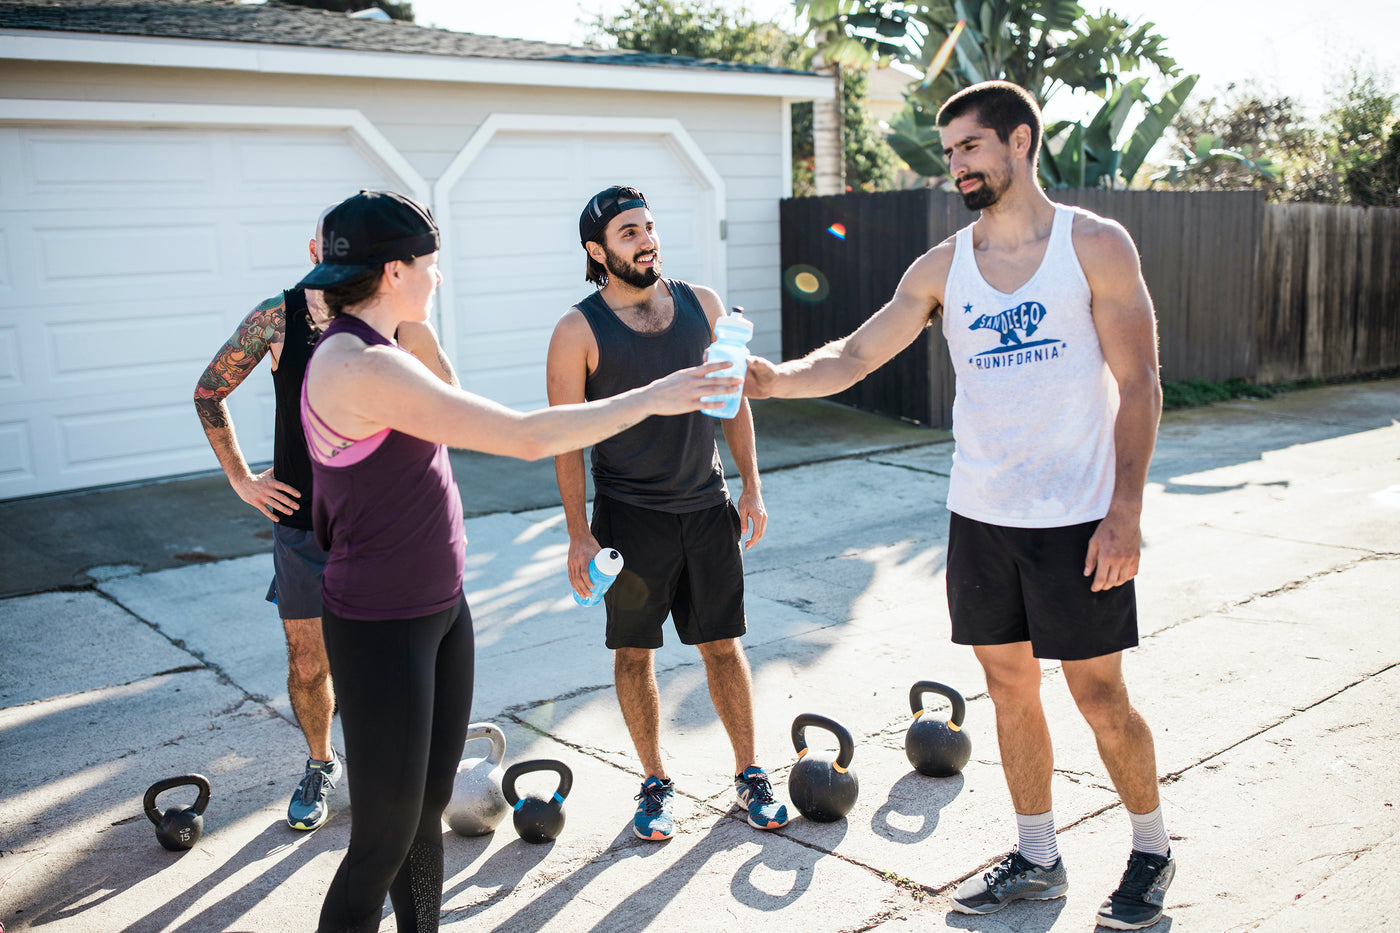 People talking and hydrating during a crossfit workout